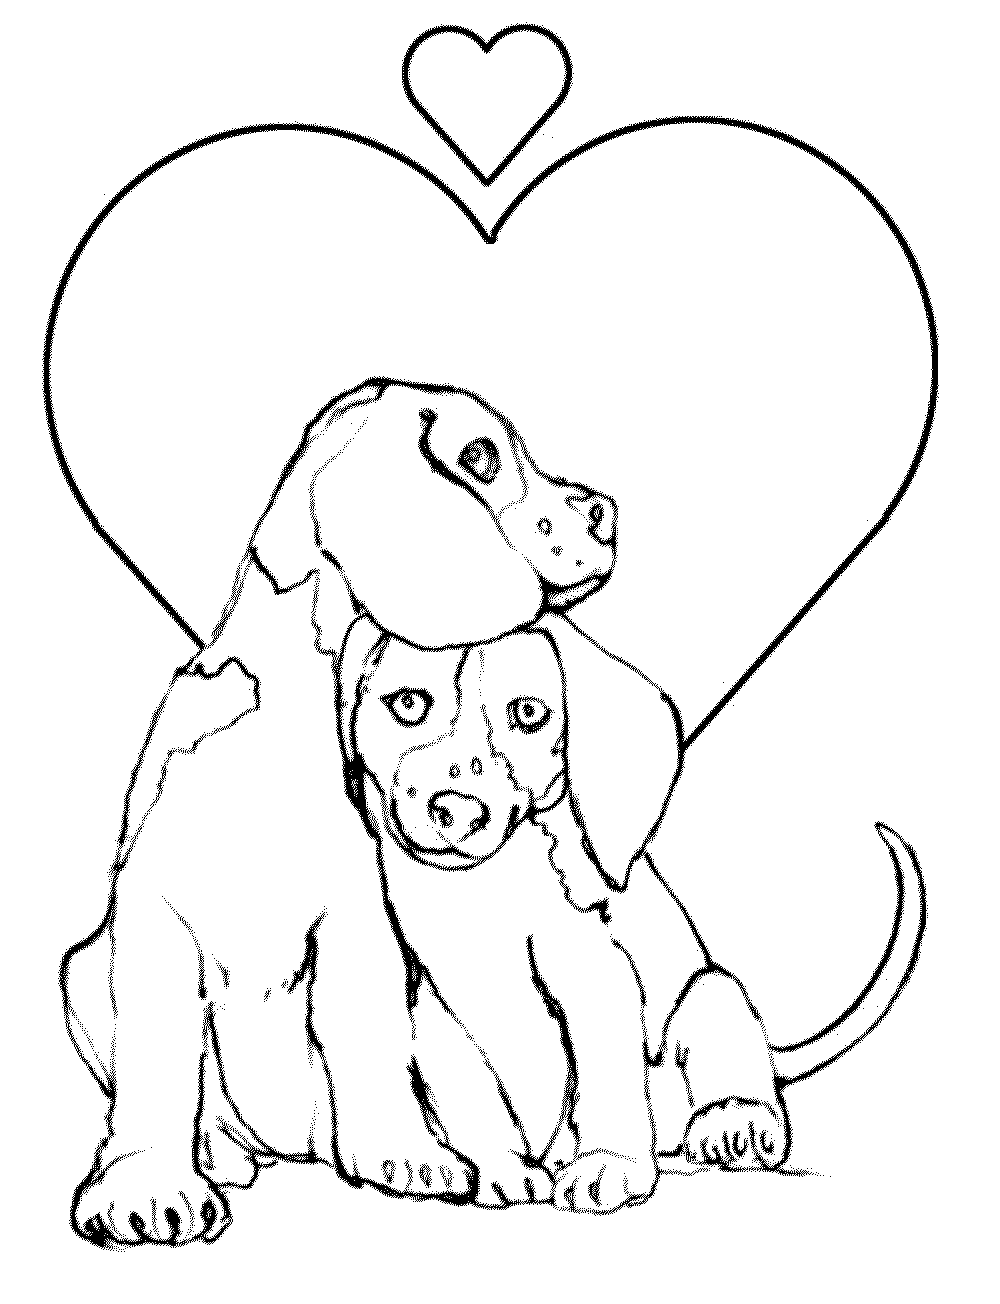 1000x1304 Harry The Dirty Dog Coloring Page Coloring Pages